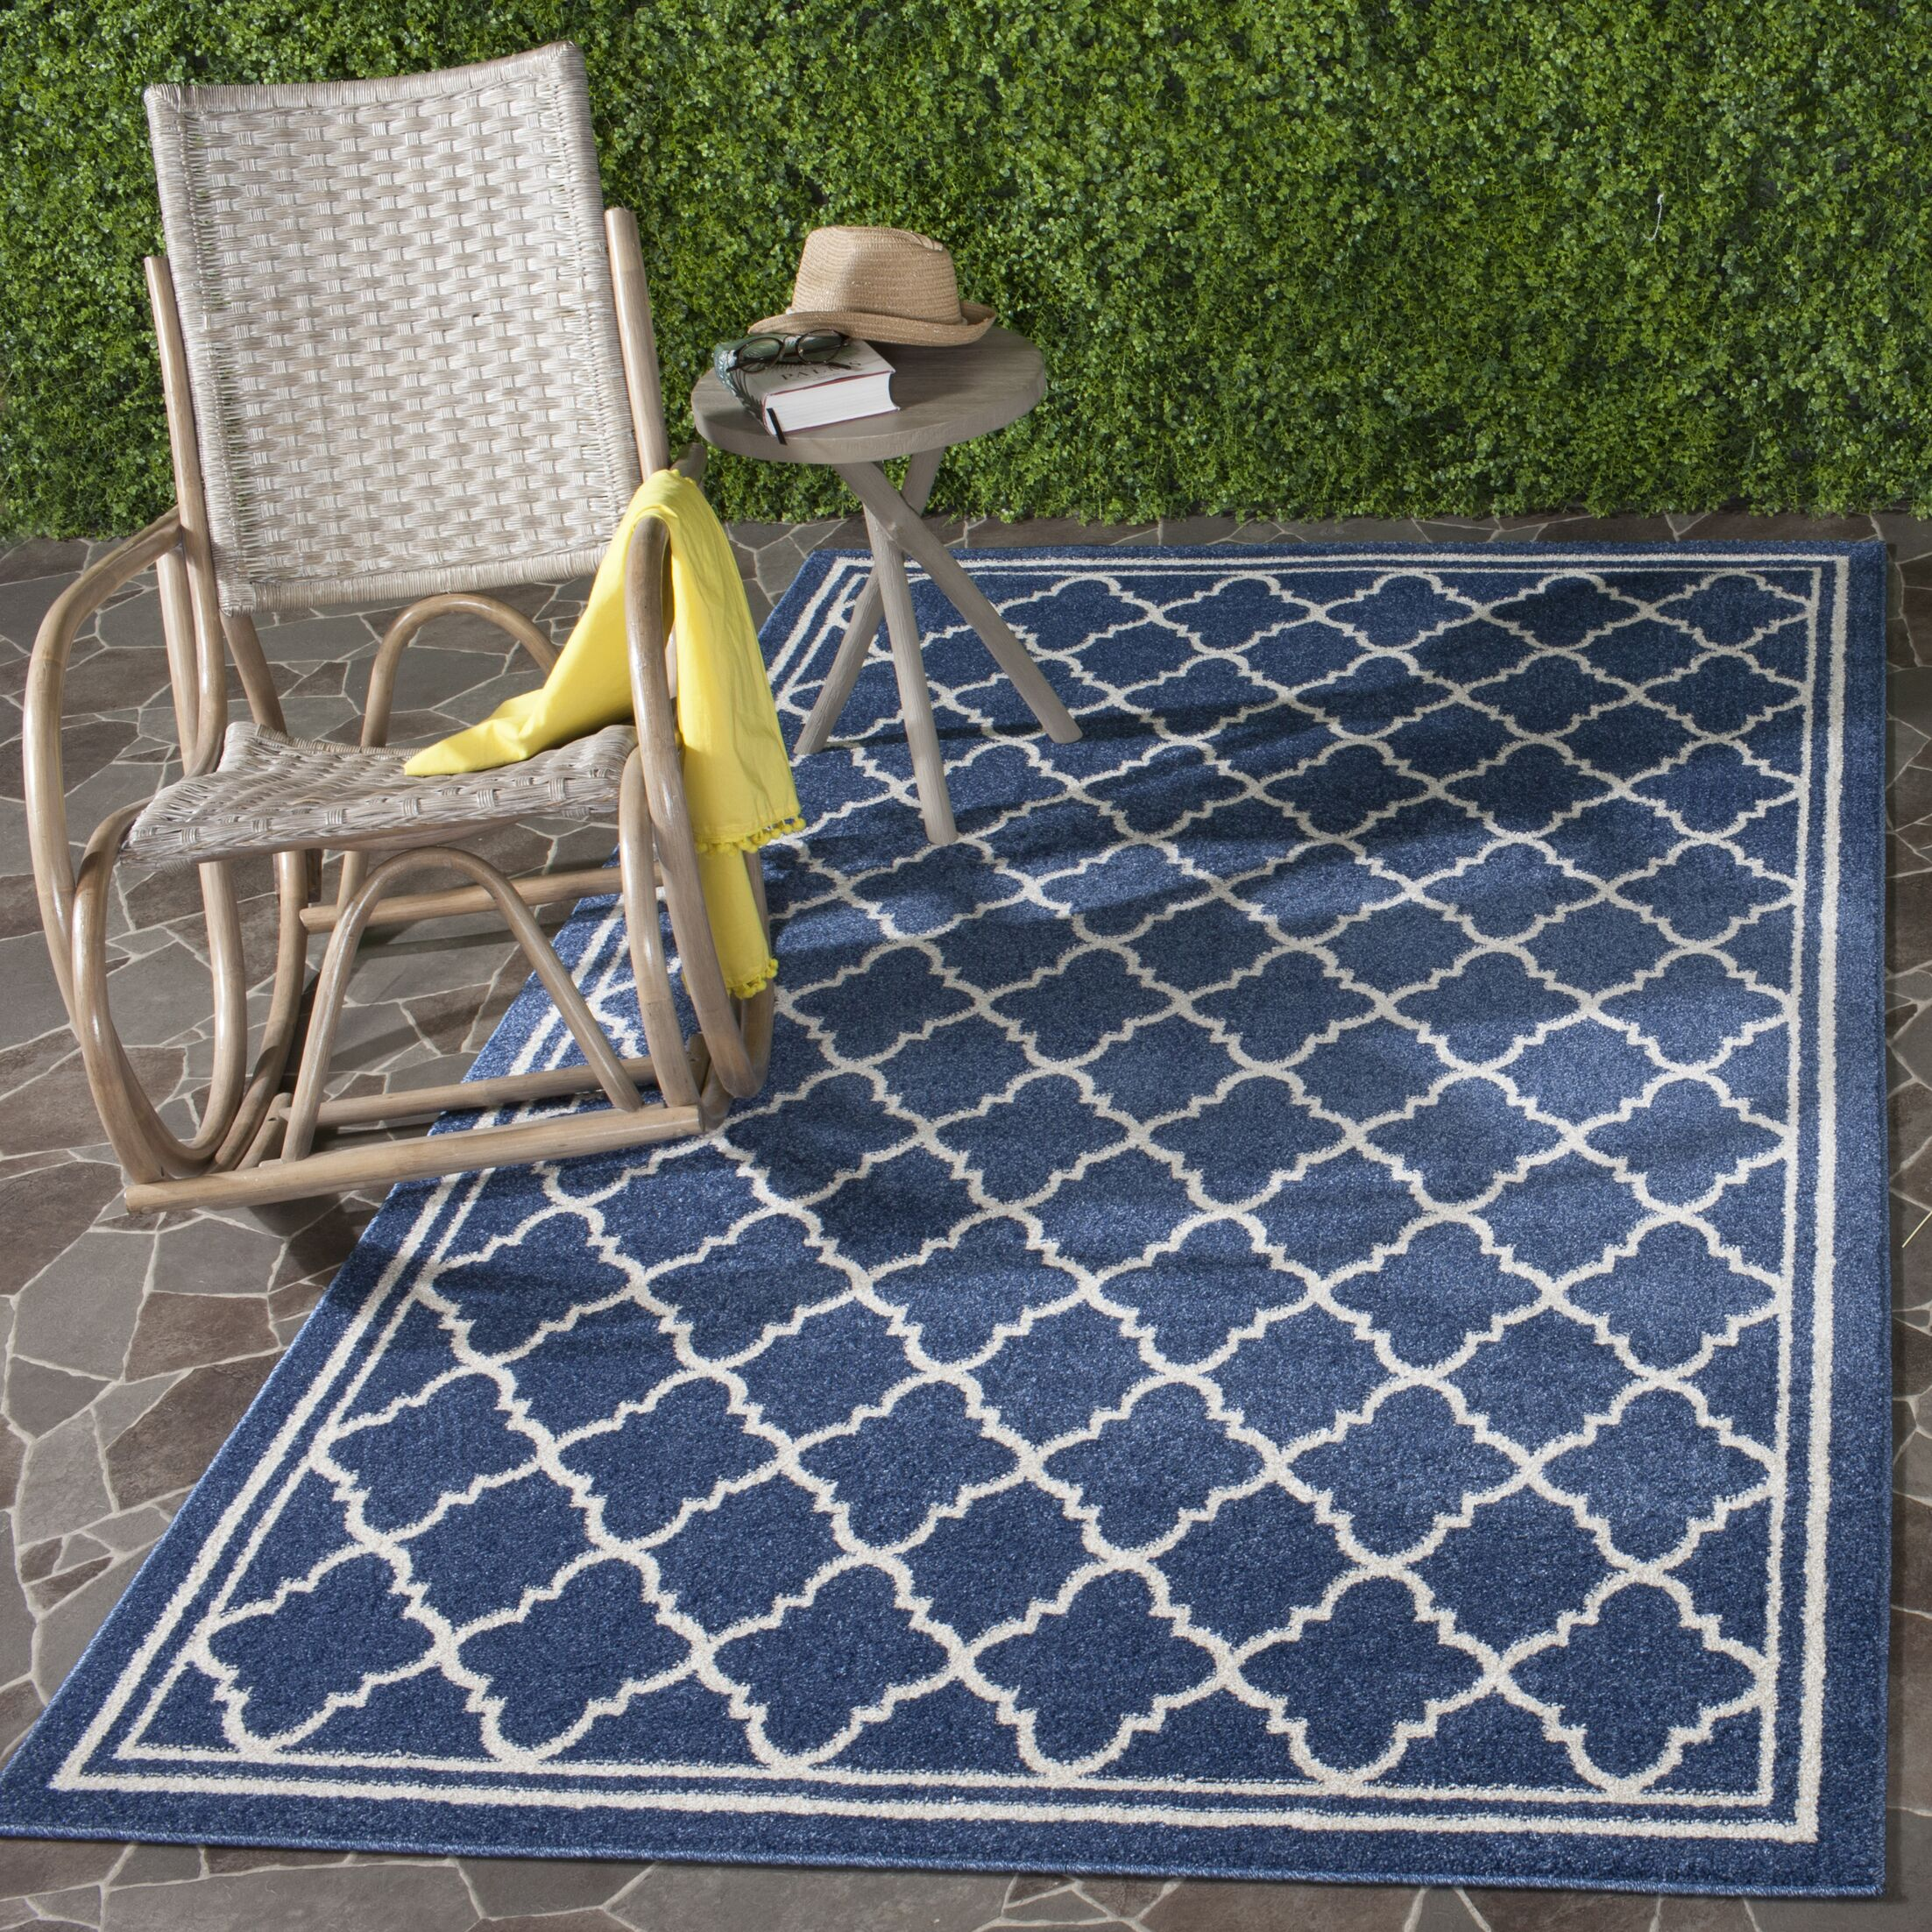 Stodola Geometric Navy/Beige Indoor/Outdoor Woven Area Rug Rug Size: Rectangle 11' x 15'